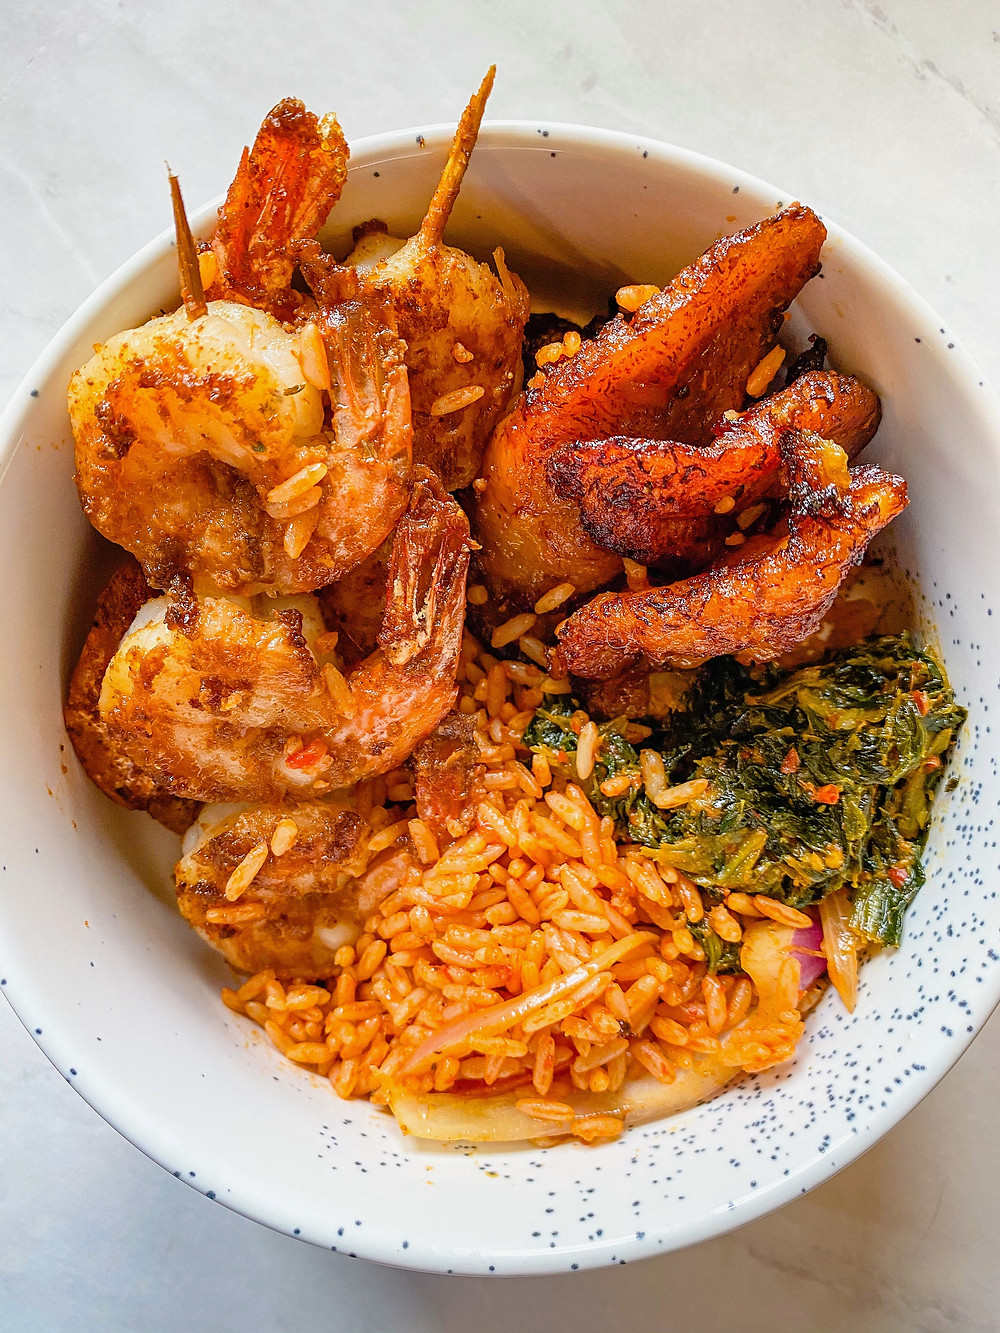 An assortment of food in a white bowl including shrimp, jollof rice, fried plantains, and sauteed greens